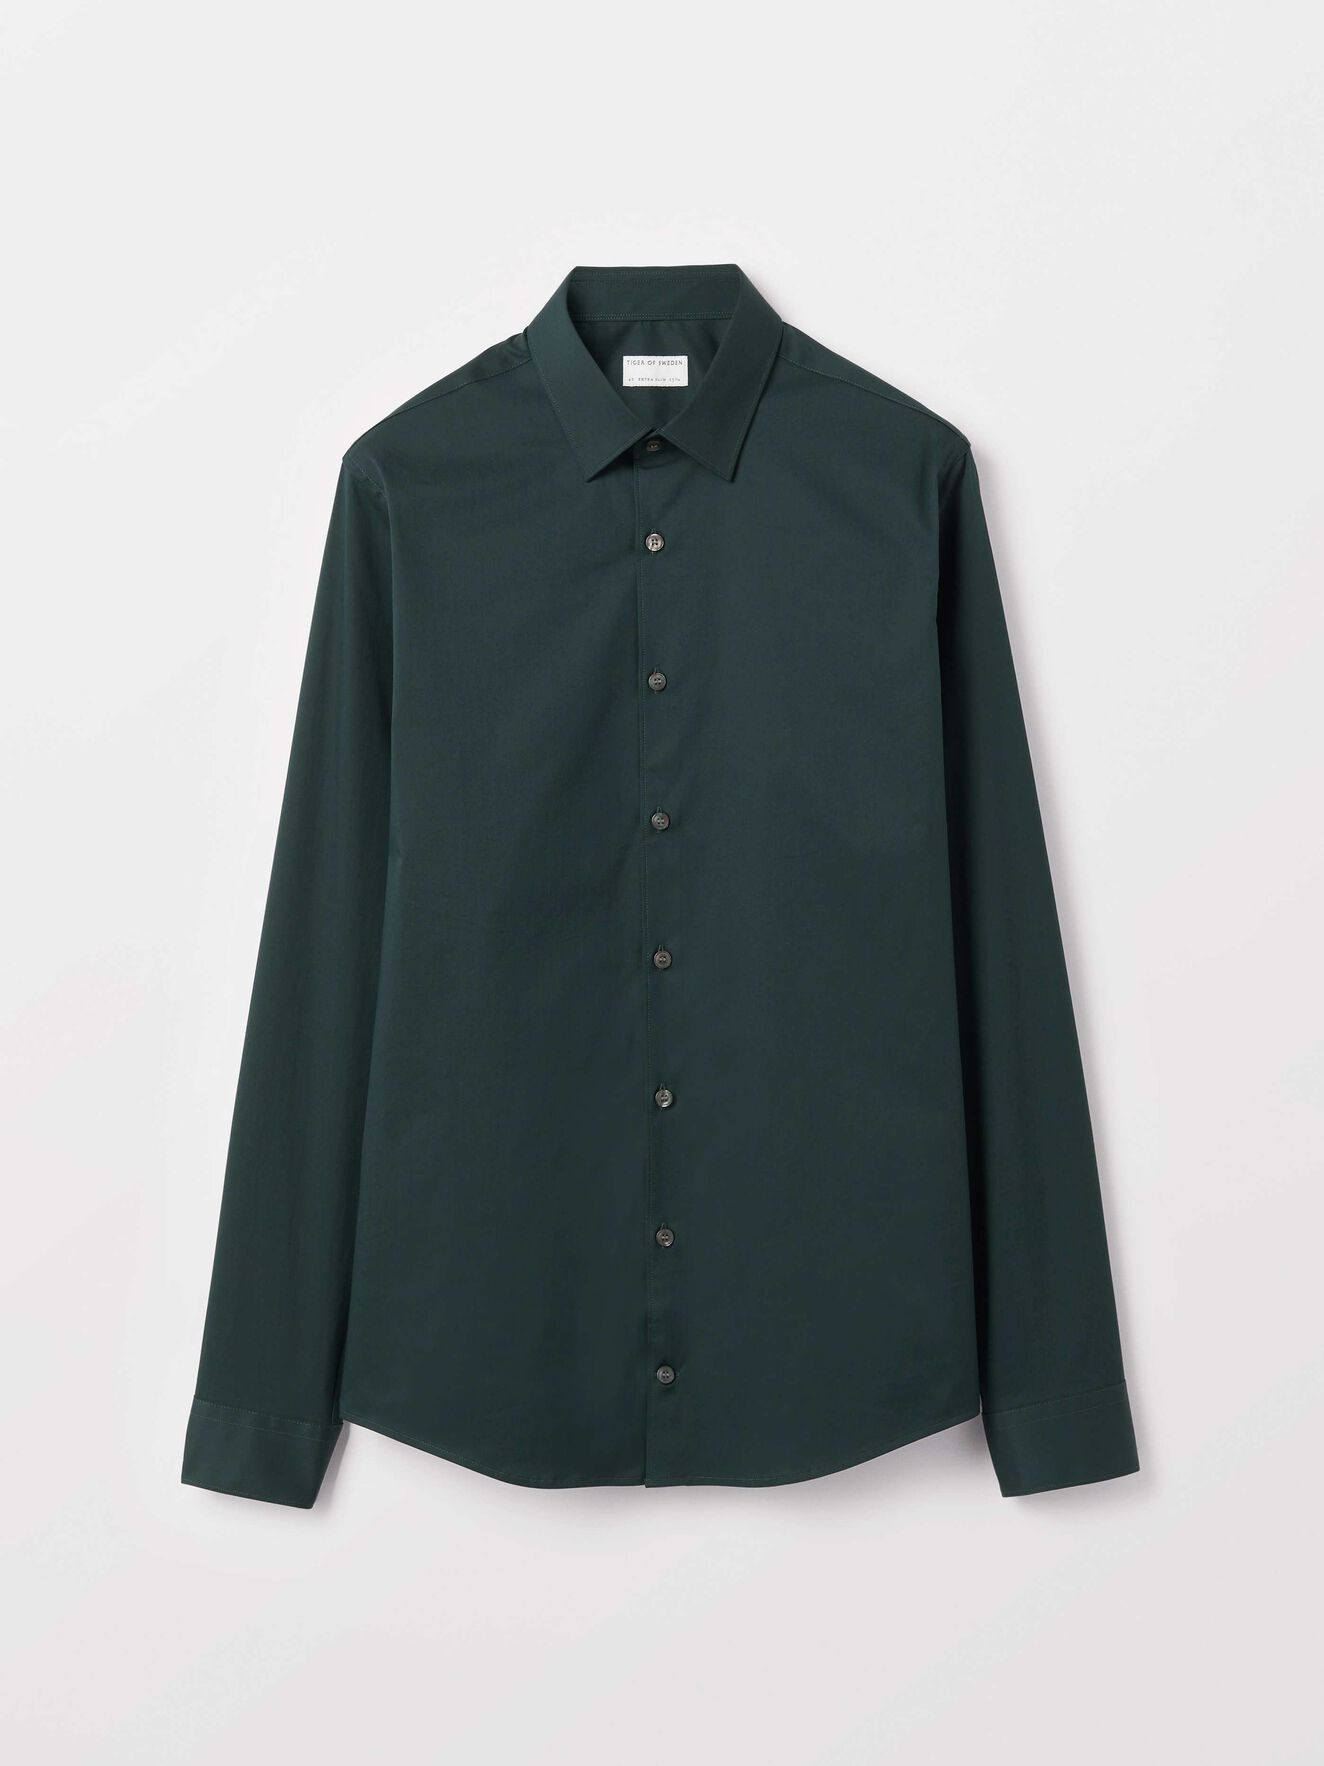 Filbrodie Shirt in Scarab Green from Tiger of Sweden